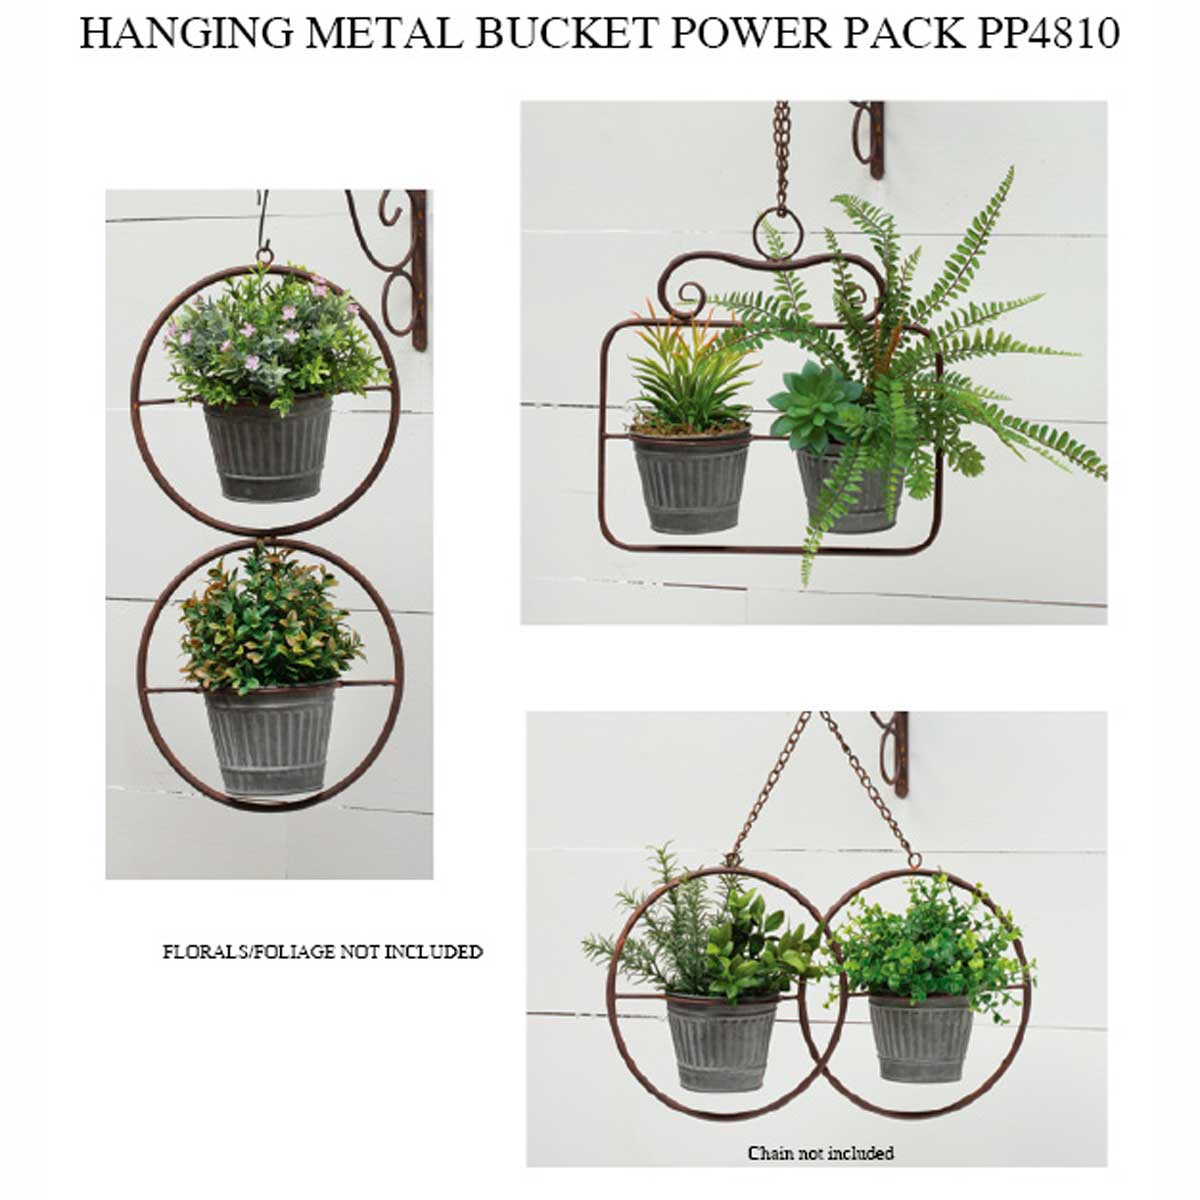 METAL BUCKET HANGING PLANTER POWER PACK 3 UNITS